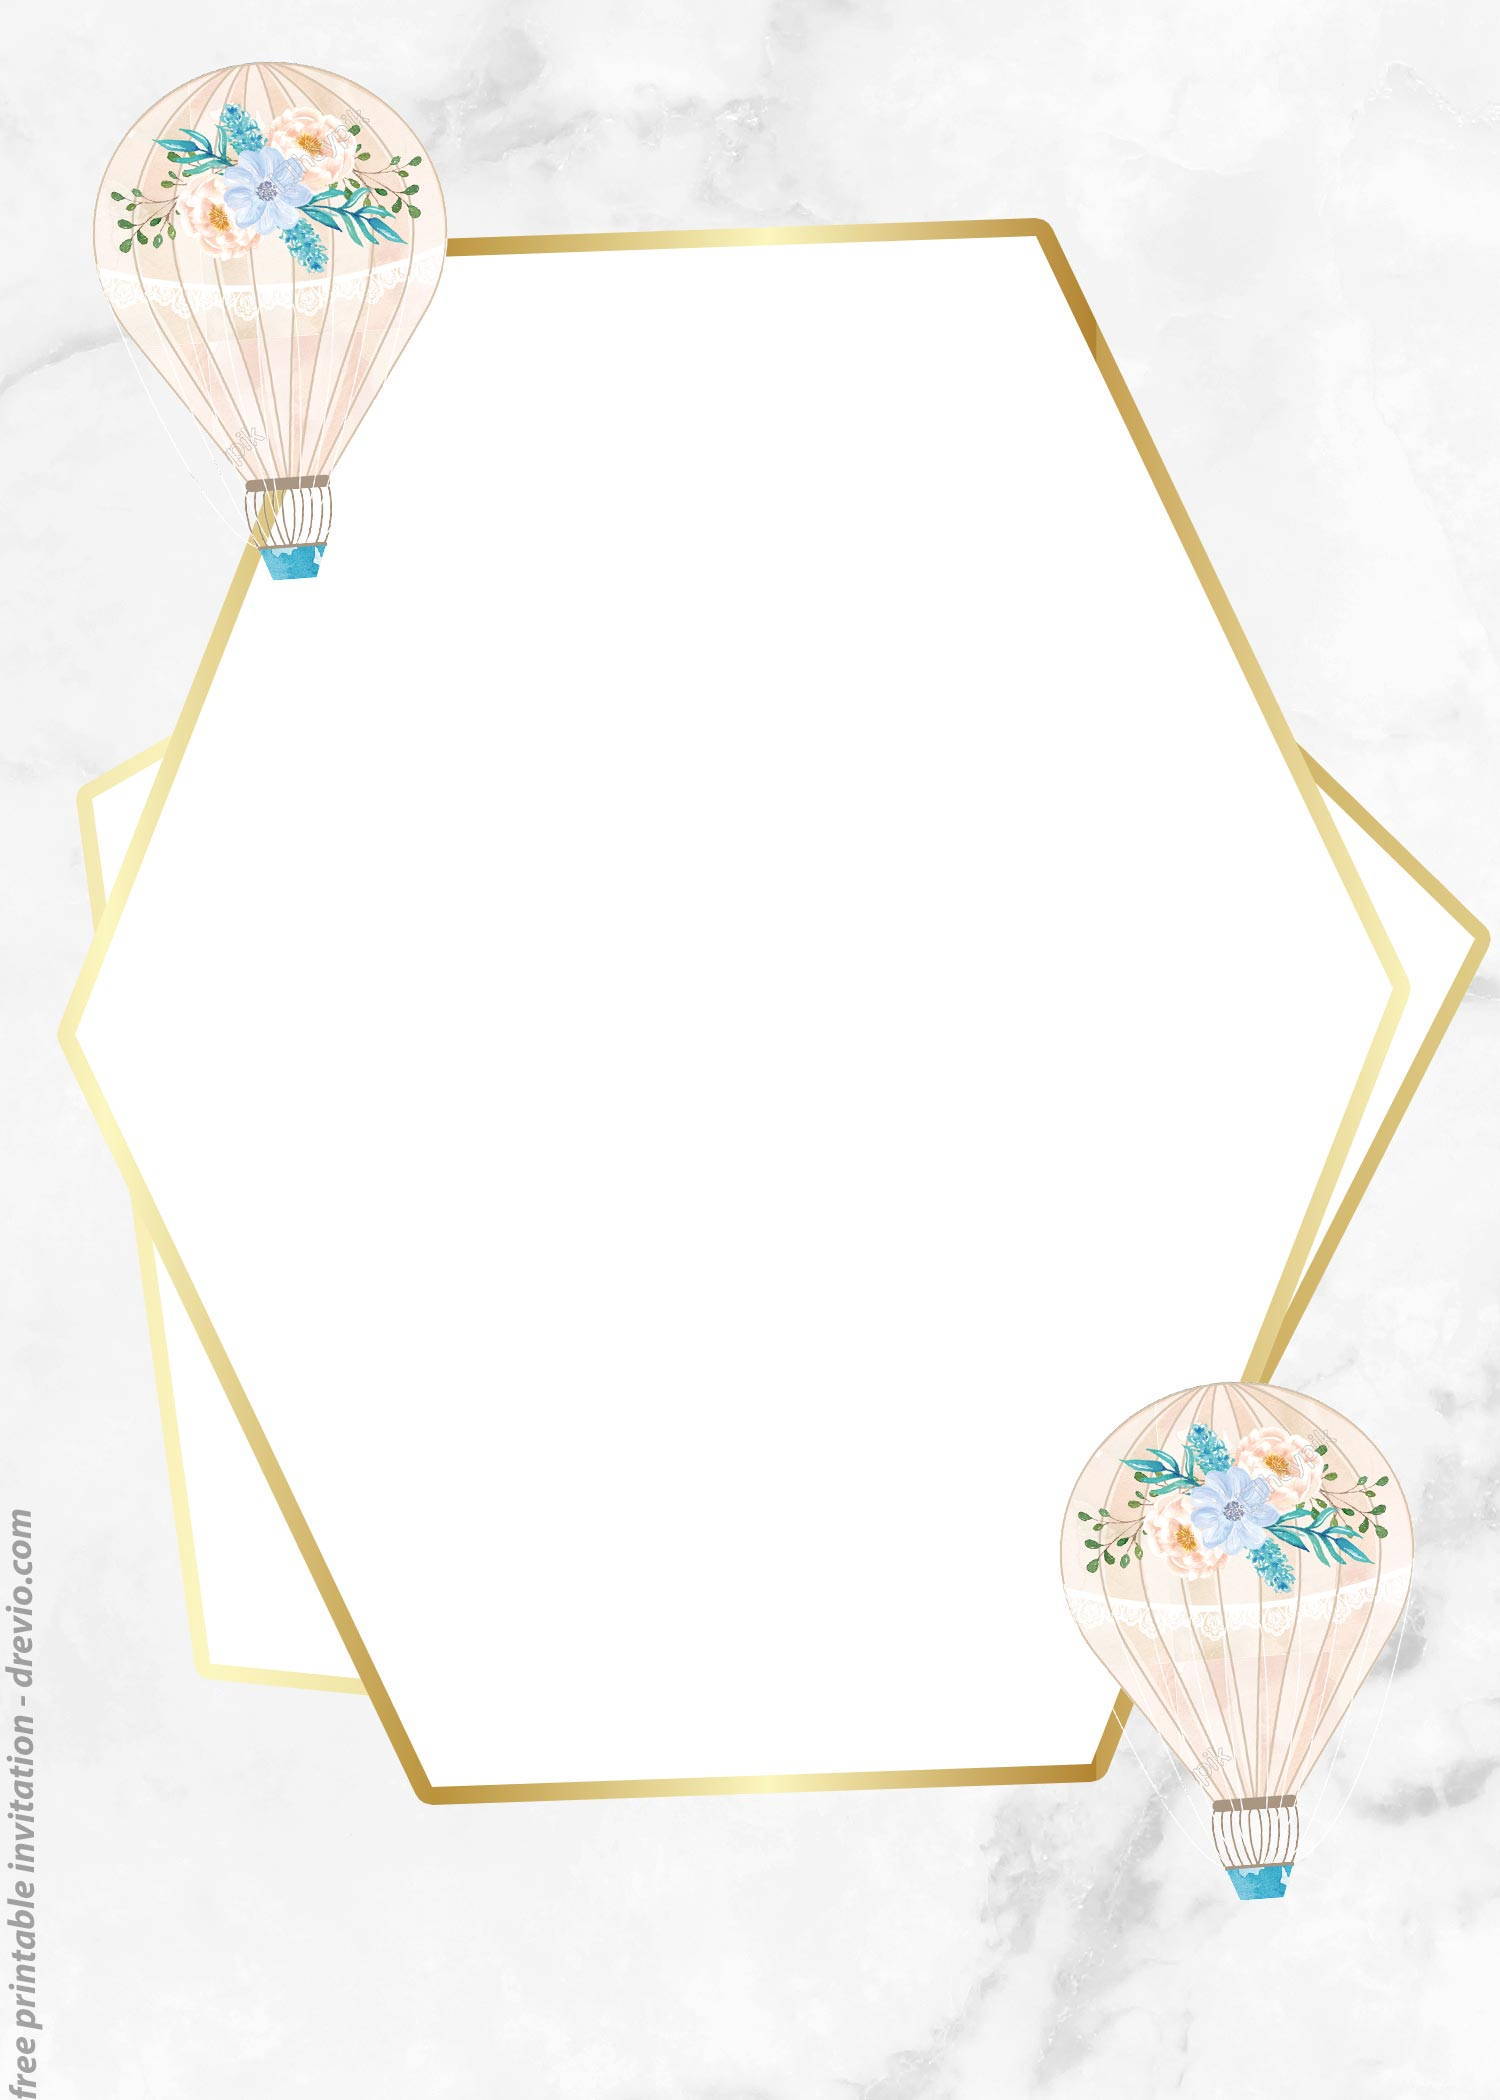 photo regarding Oh the Places You'll Go Balloon Printable Template named Absolutely free Watercolor Very hot Air Balloon Traditional Invitation Templates